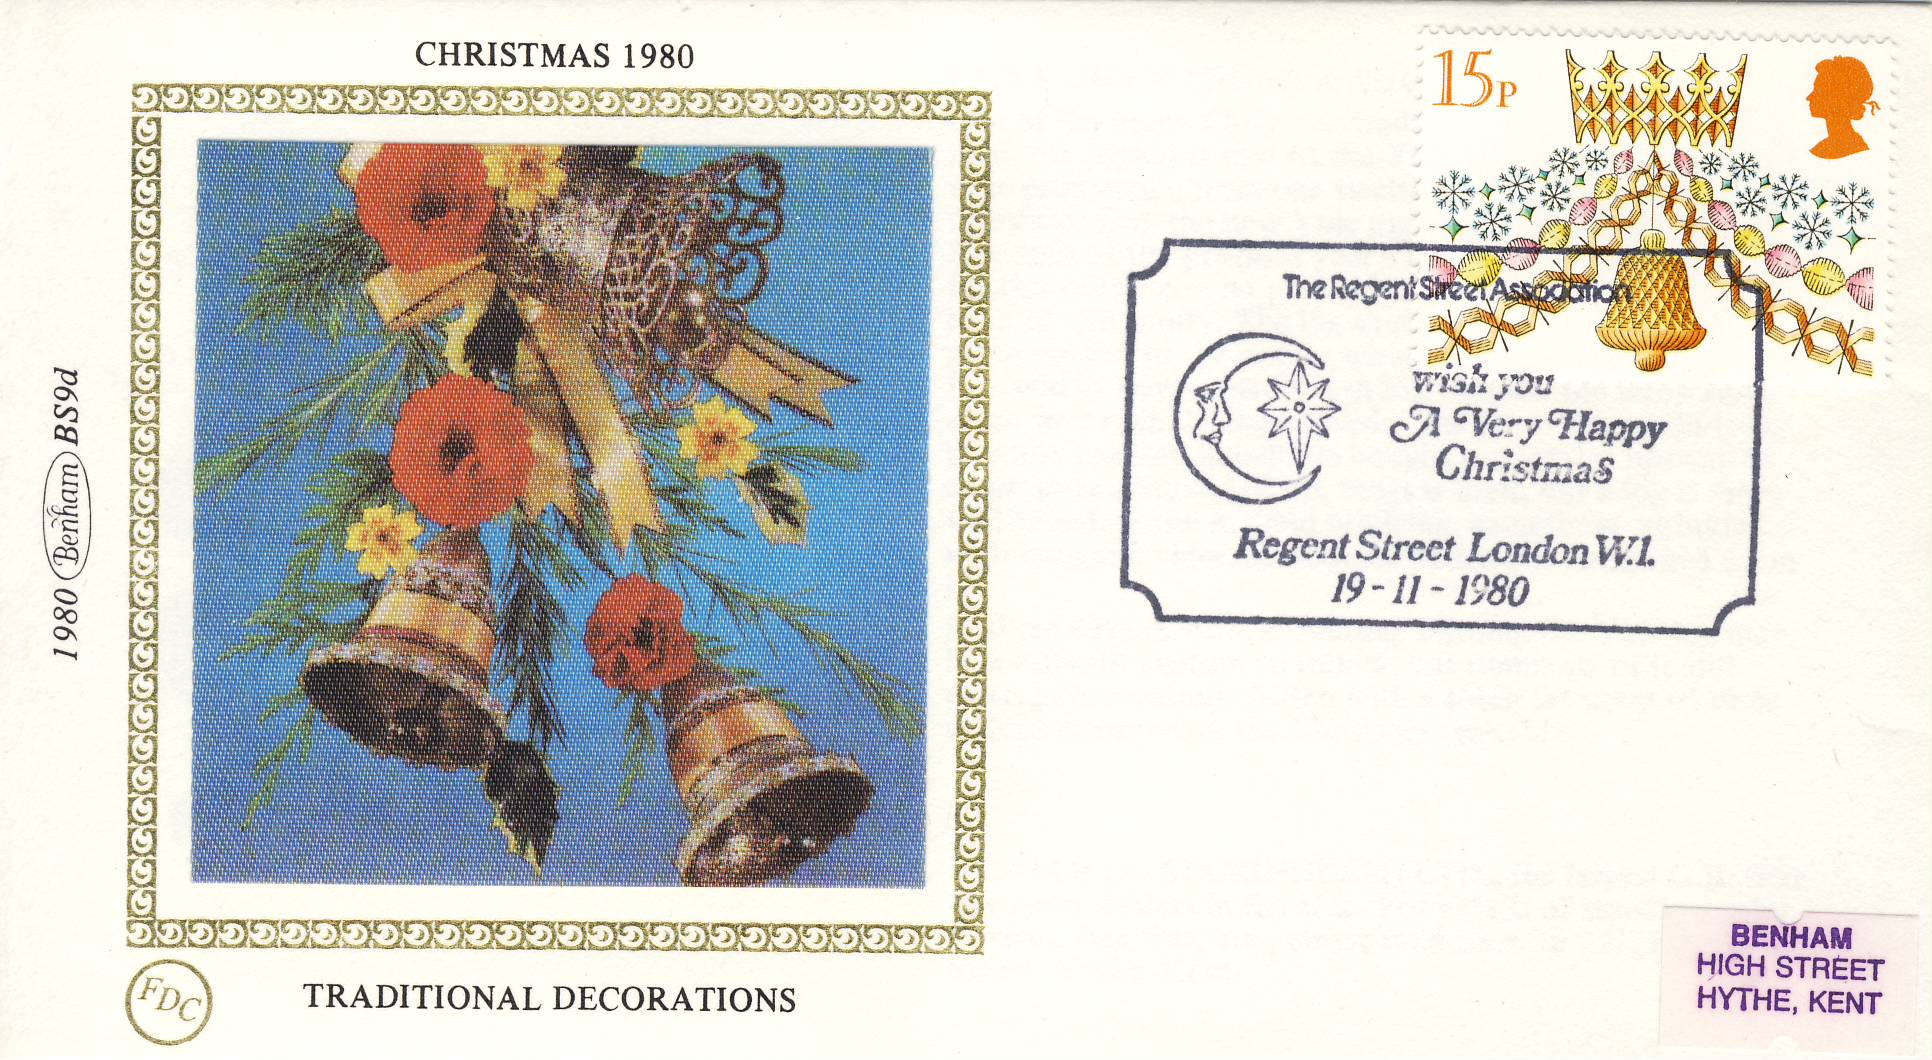 1980 CHRISTMAS BS9d Traditional Decorations Benham Sm Silk Cover refF502Postmarked REGENT STREET LONDON W1 . Very good condition. Unsealed with insert card. Ideal for gift